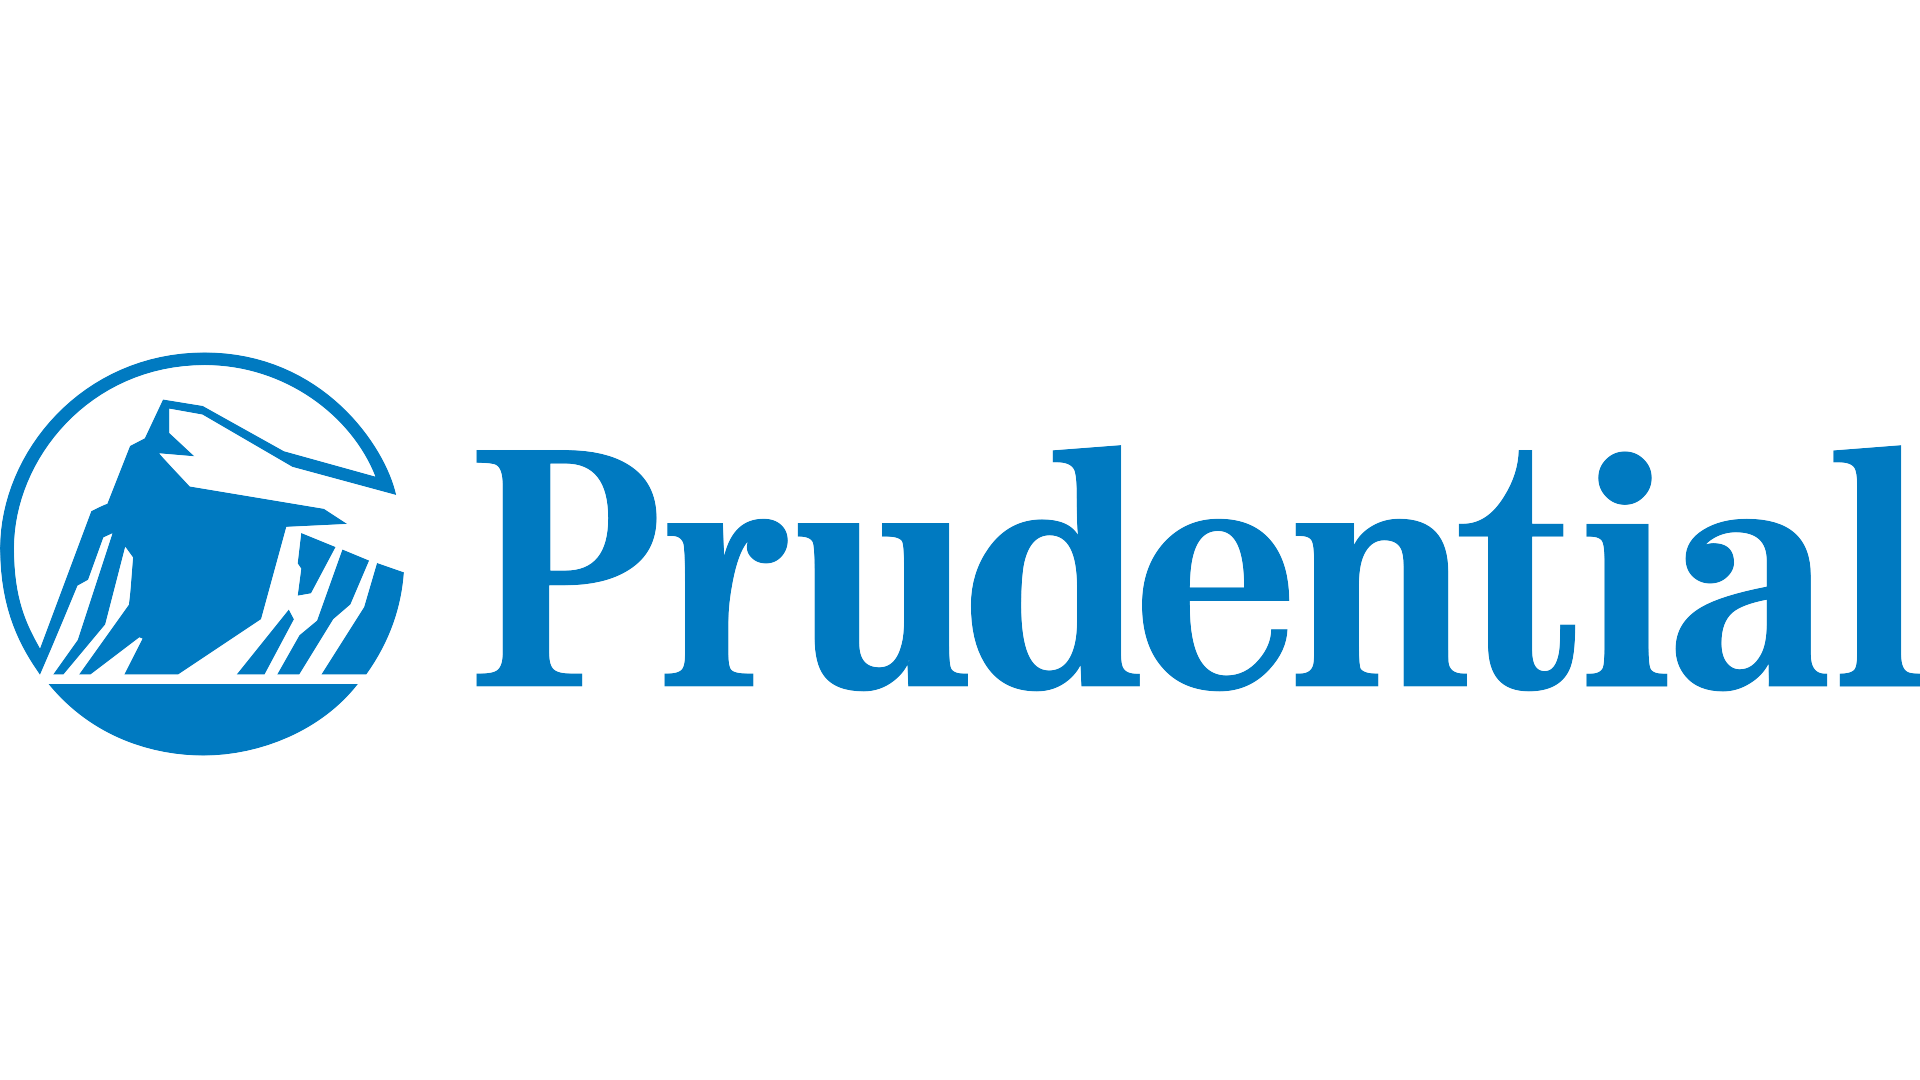 Image result for Prudential Protective logo